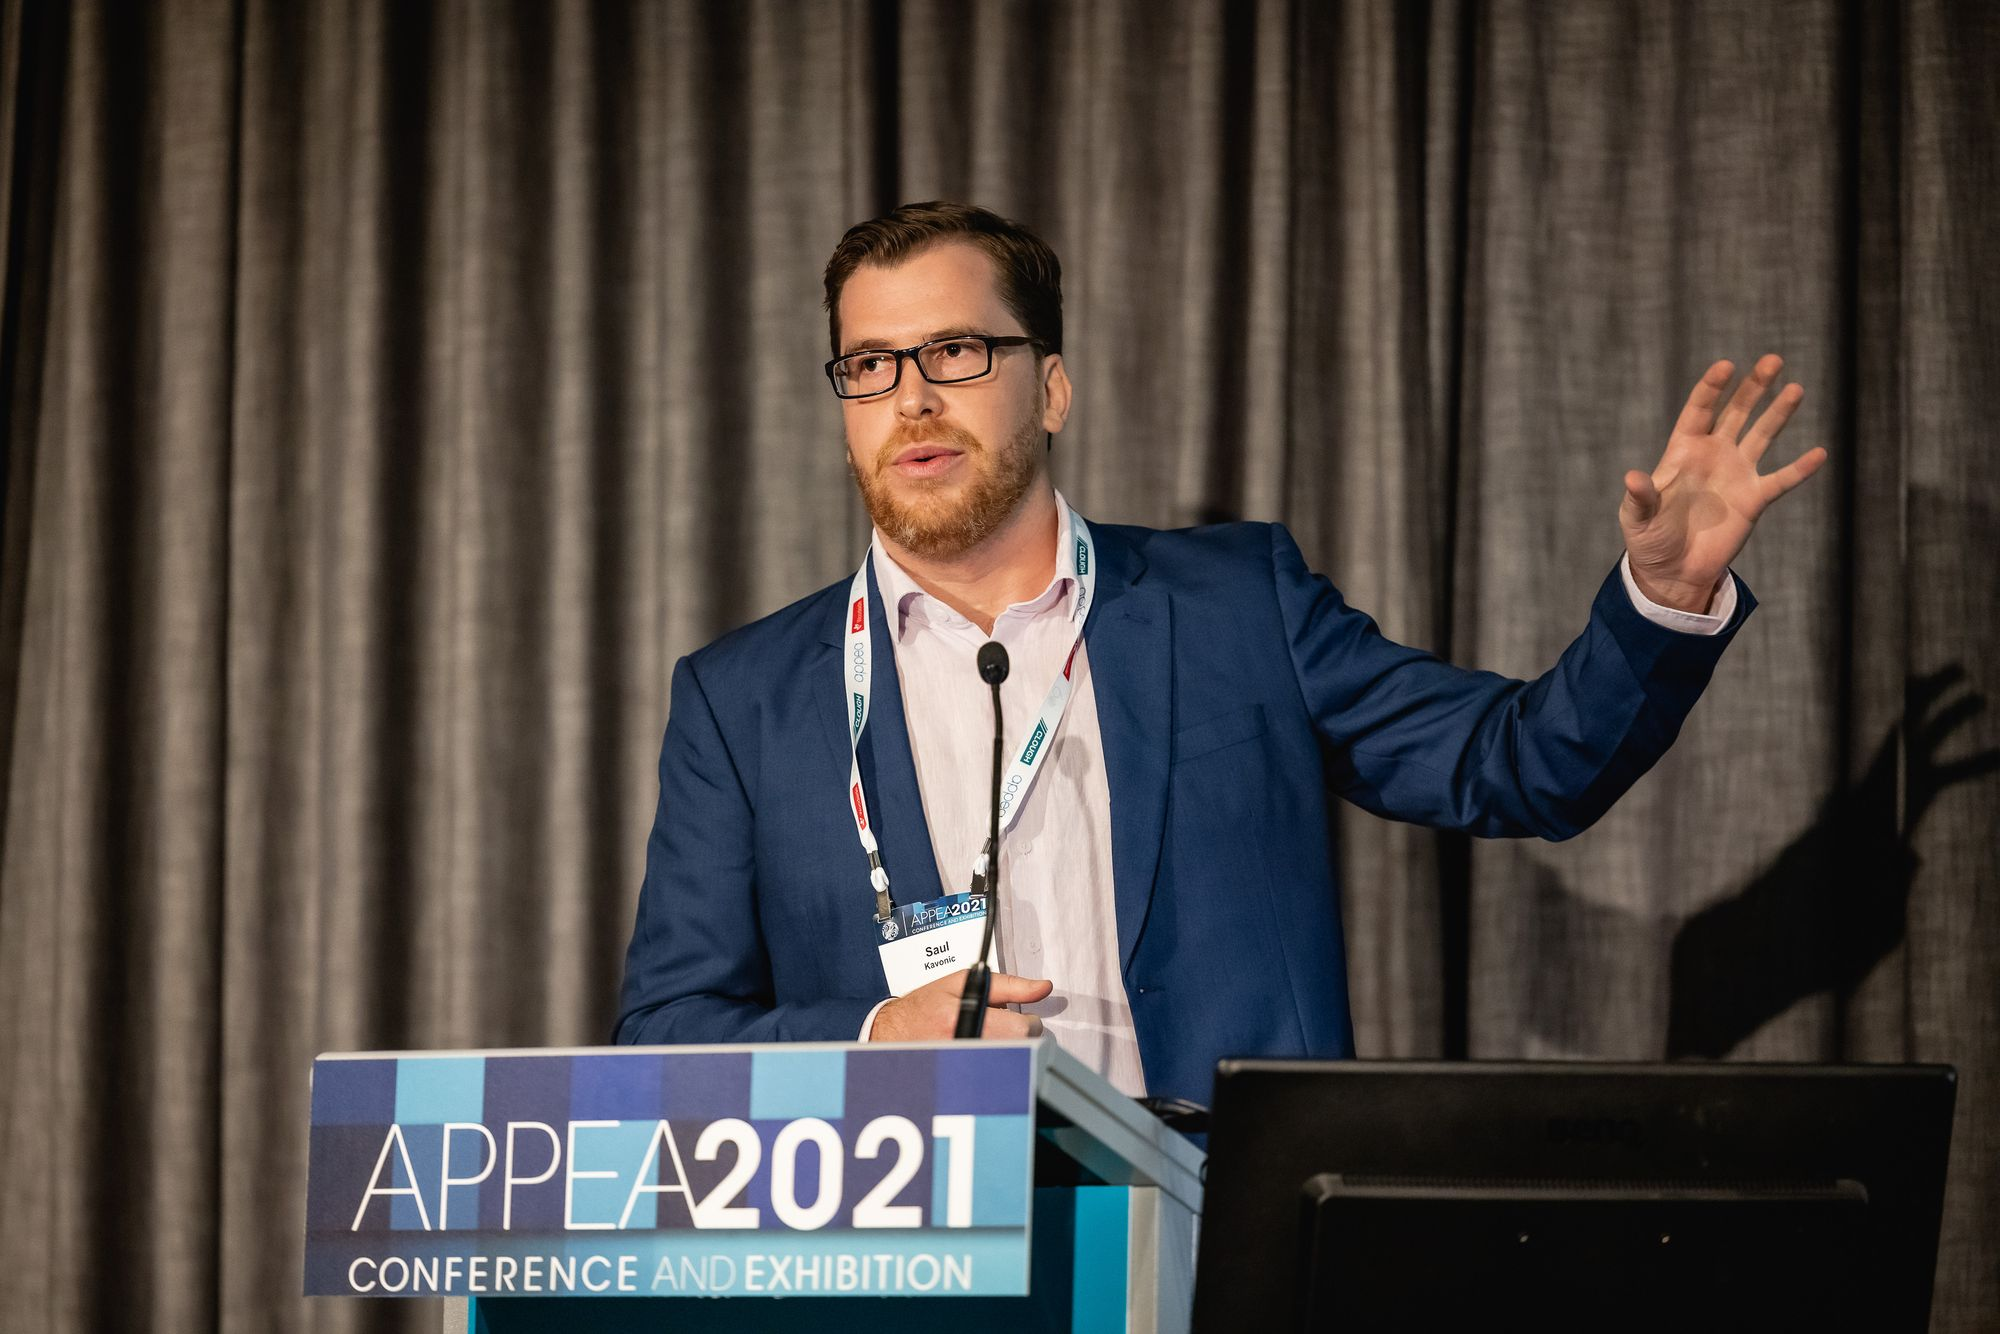 Credit Suisse's Saul Kavonic at the APPEA 2021 Conference